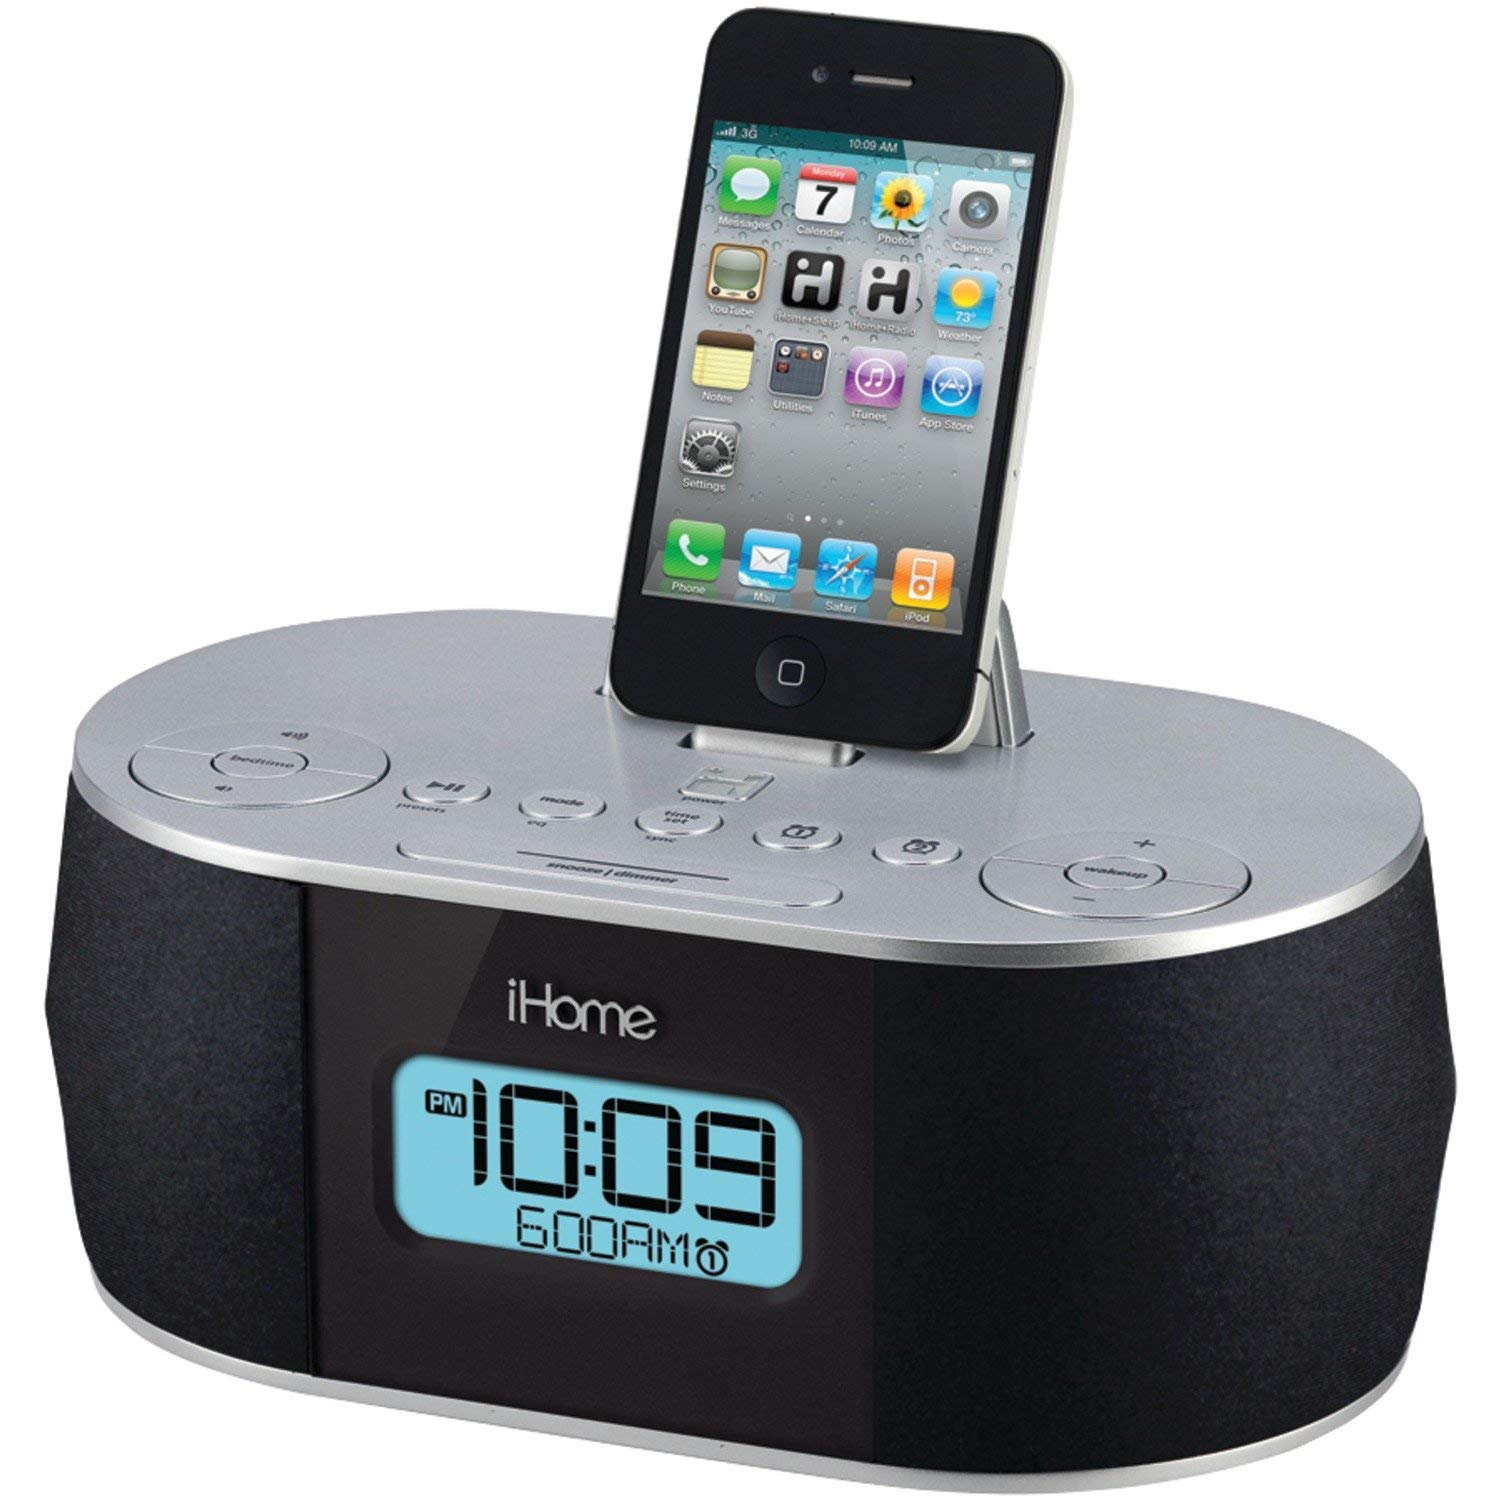 ihome images